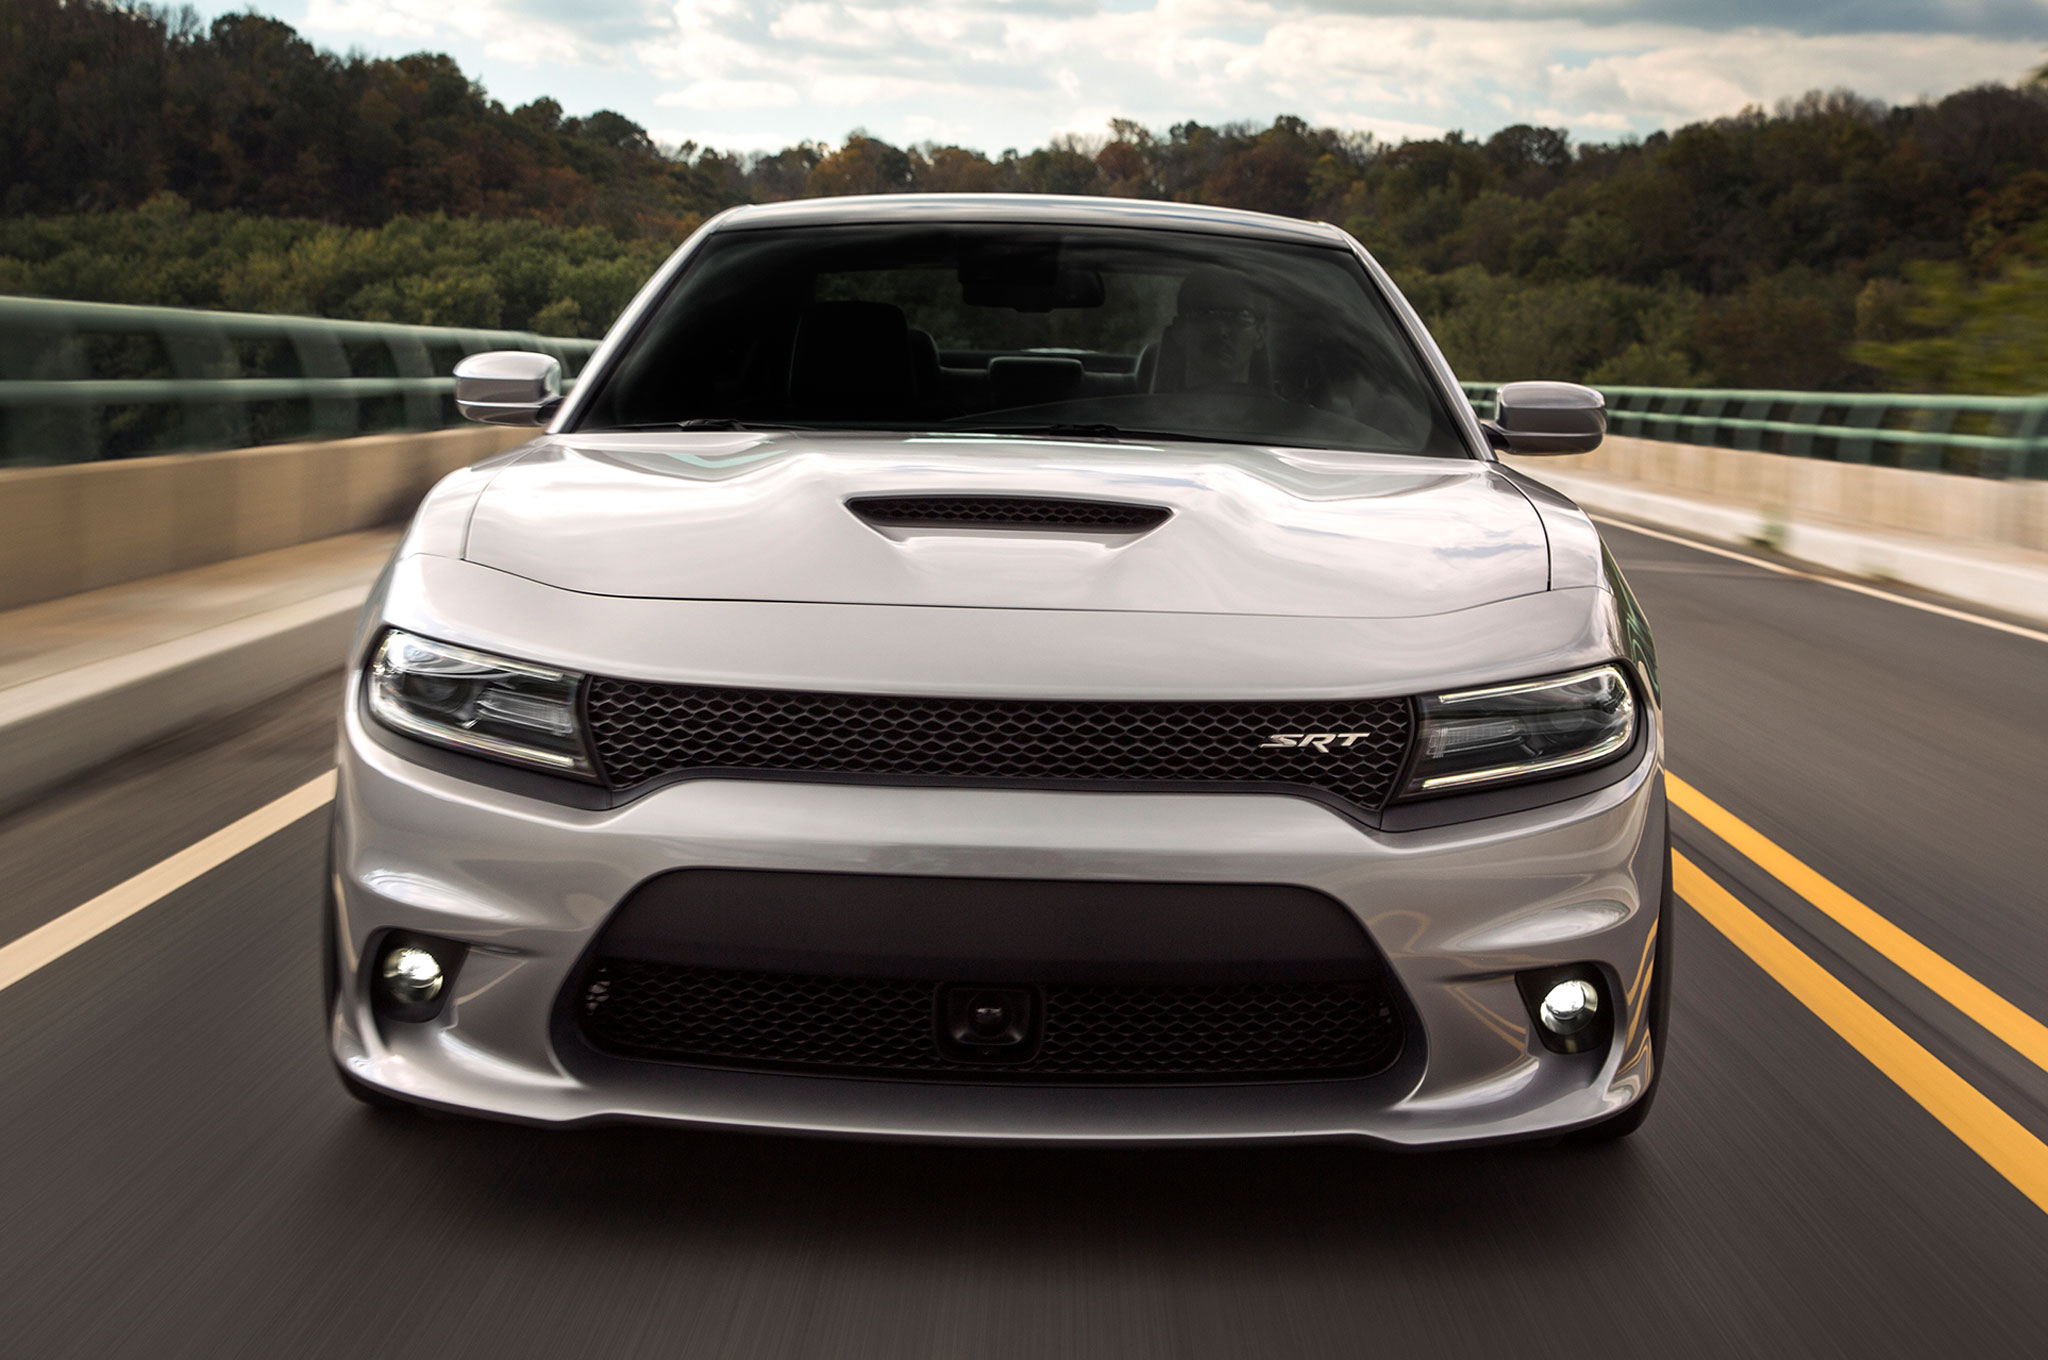 quarter srt rear hellcat more charger dodge show three news view review